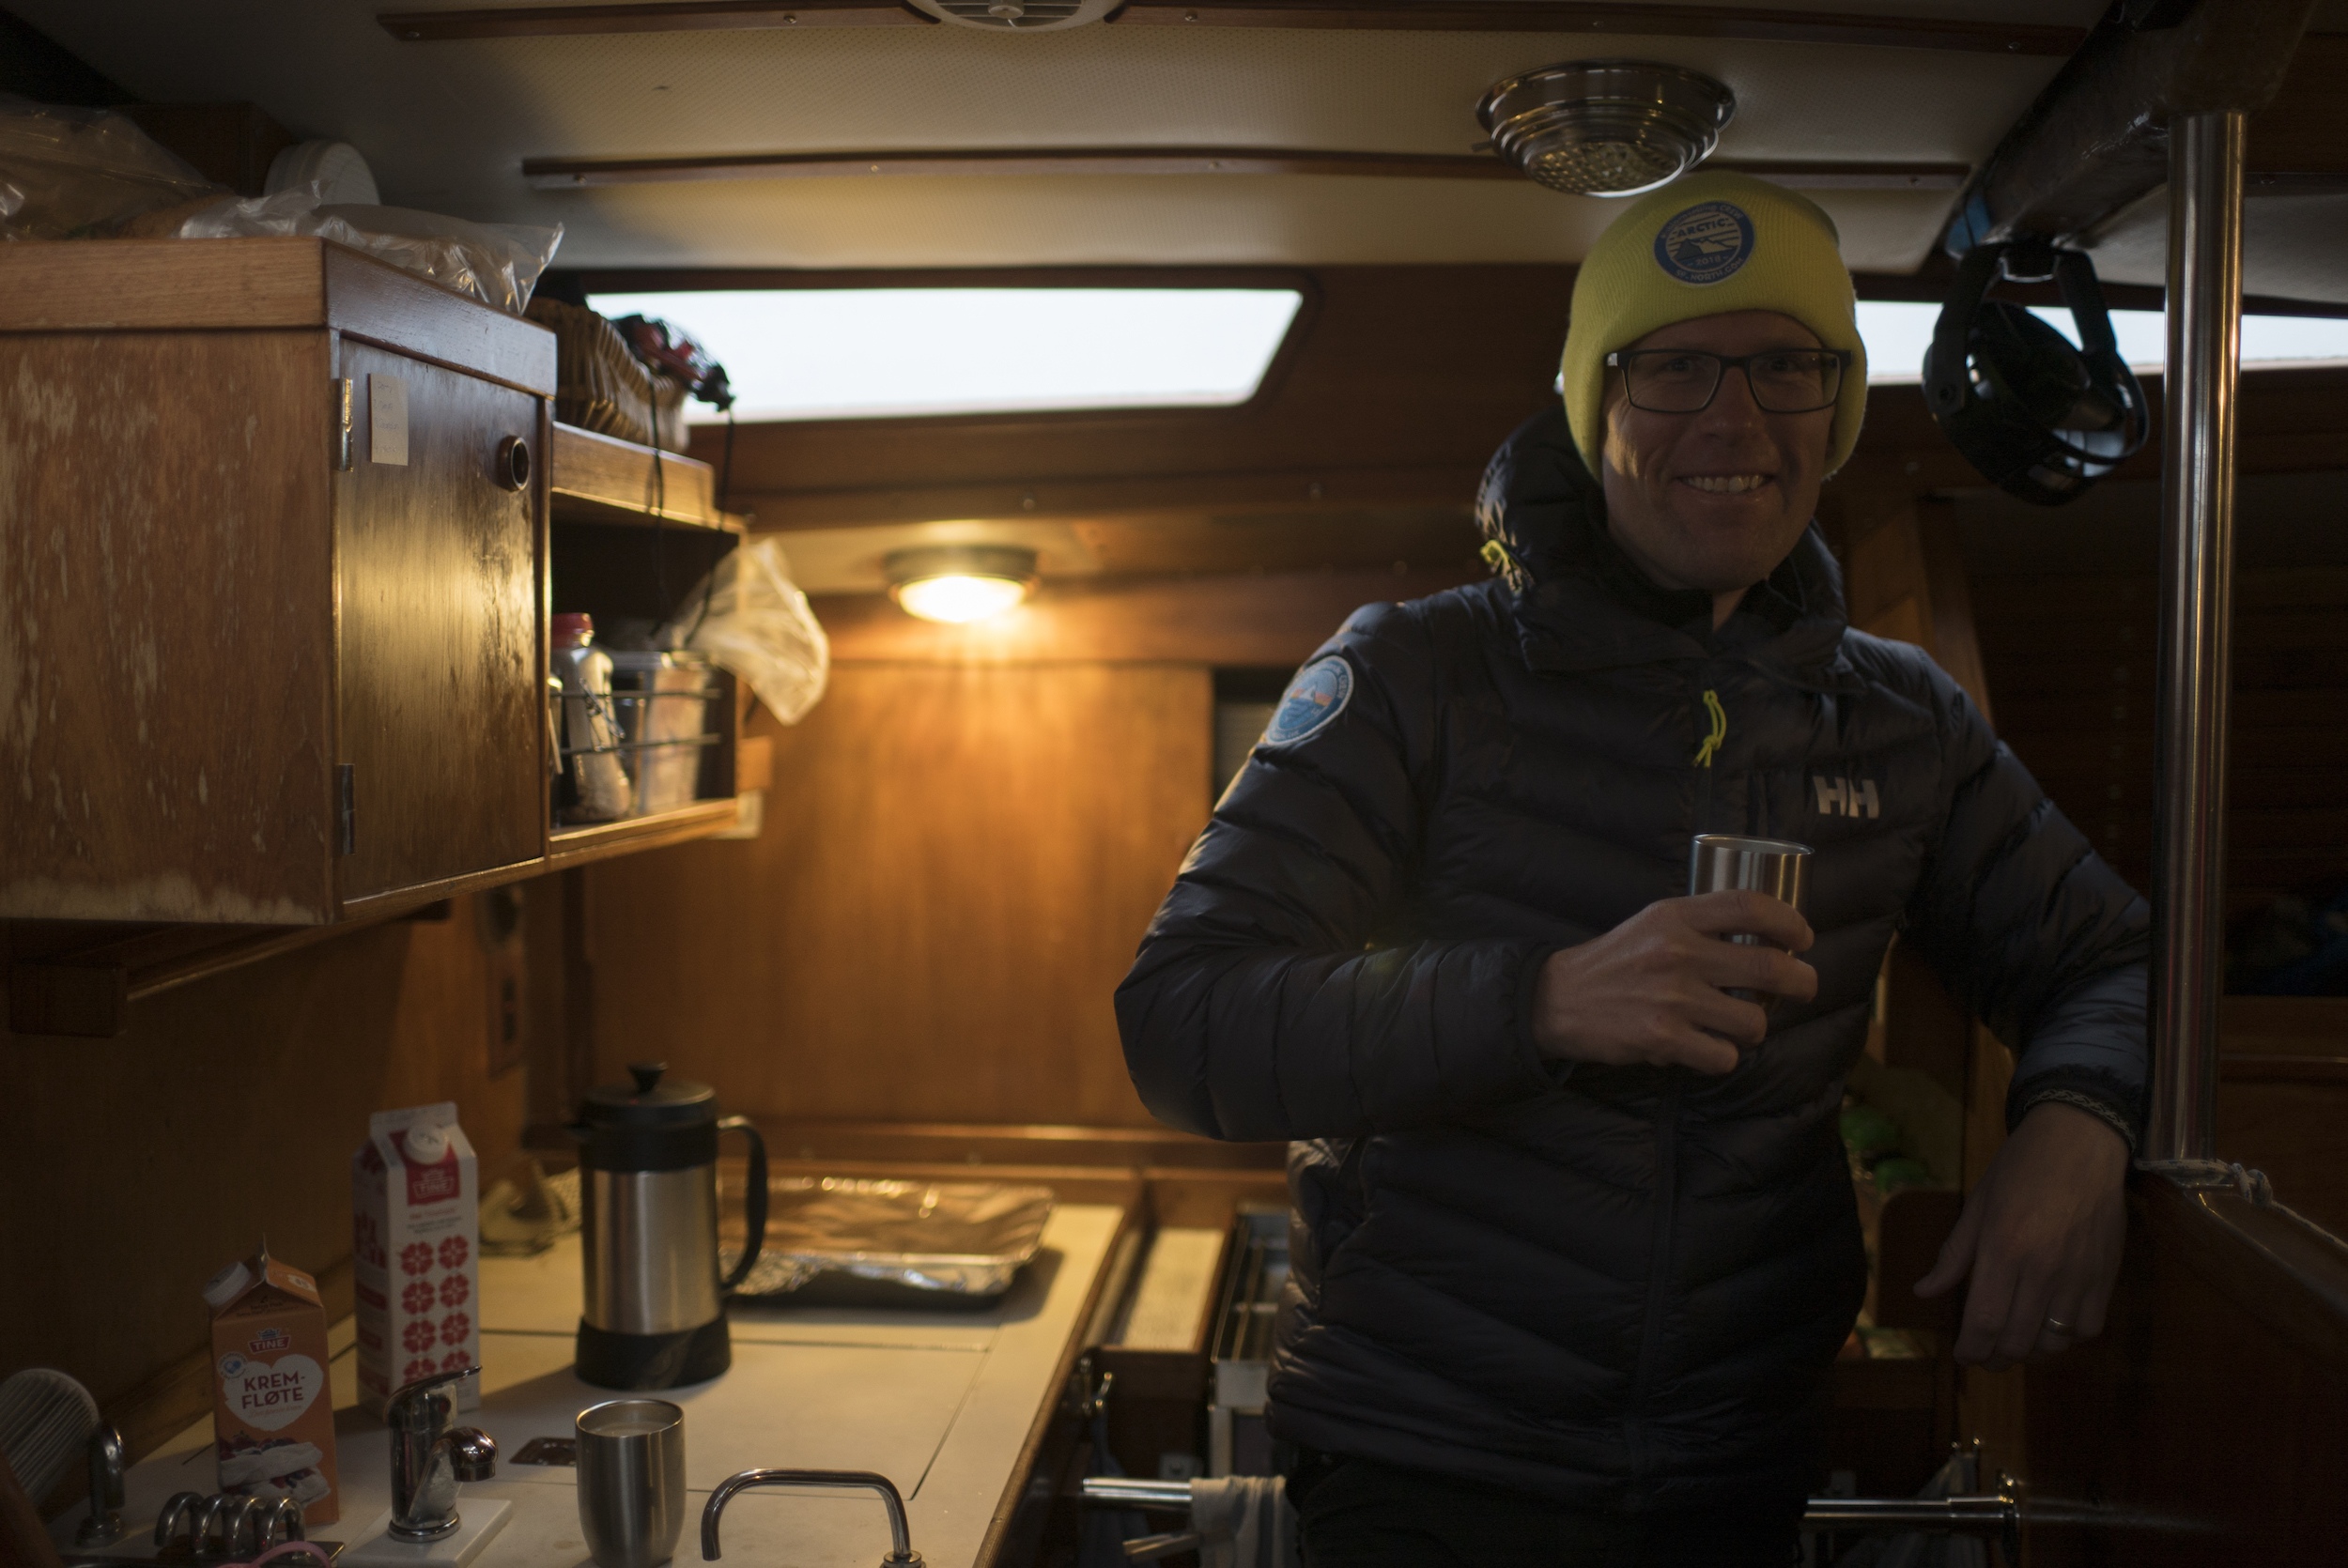 Nervous smile as I sipped my last coffee on anchor as we prepared for departure in Norway.